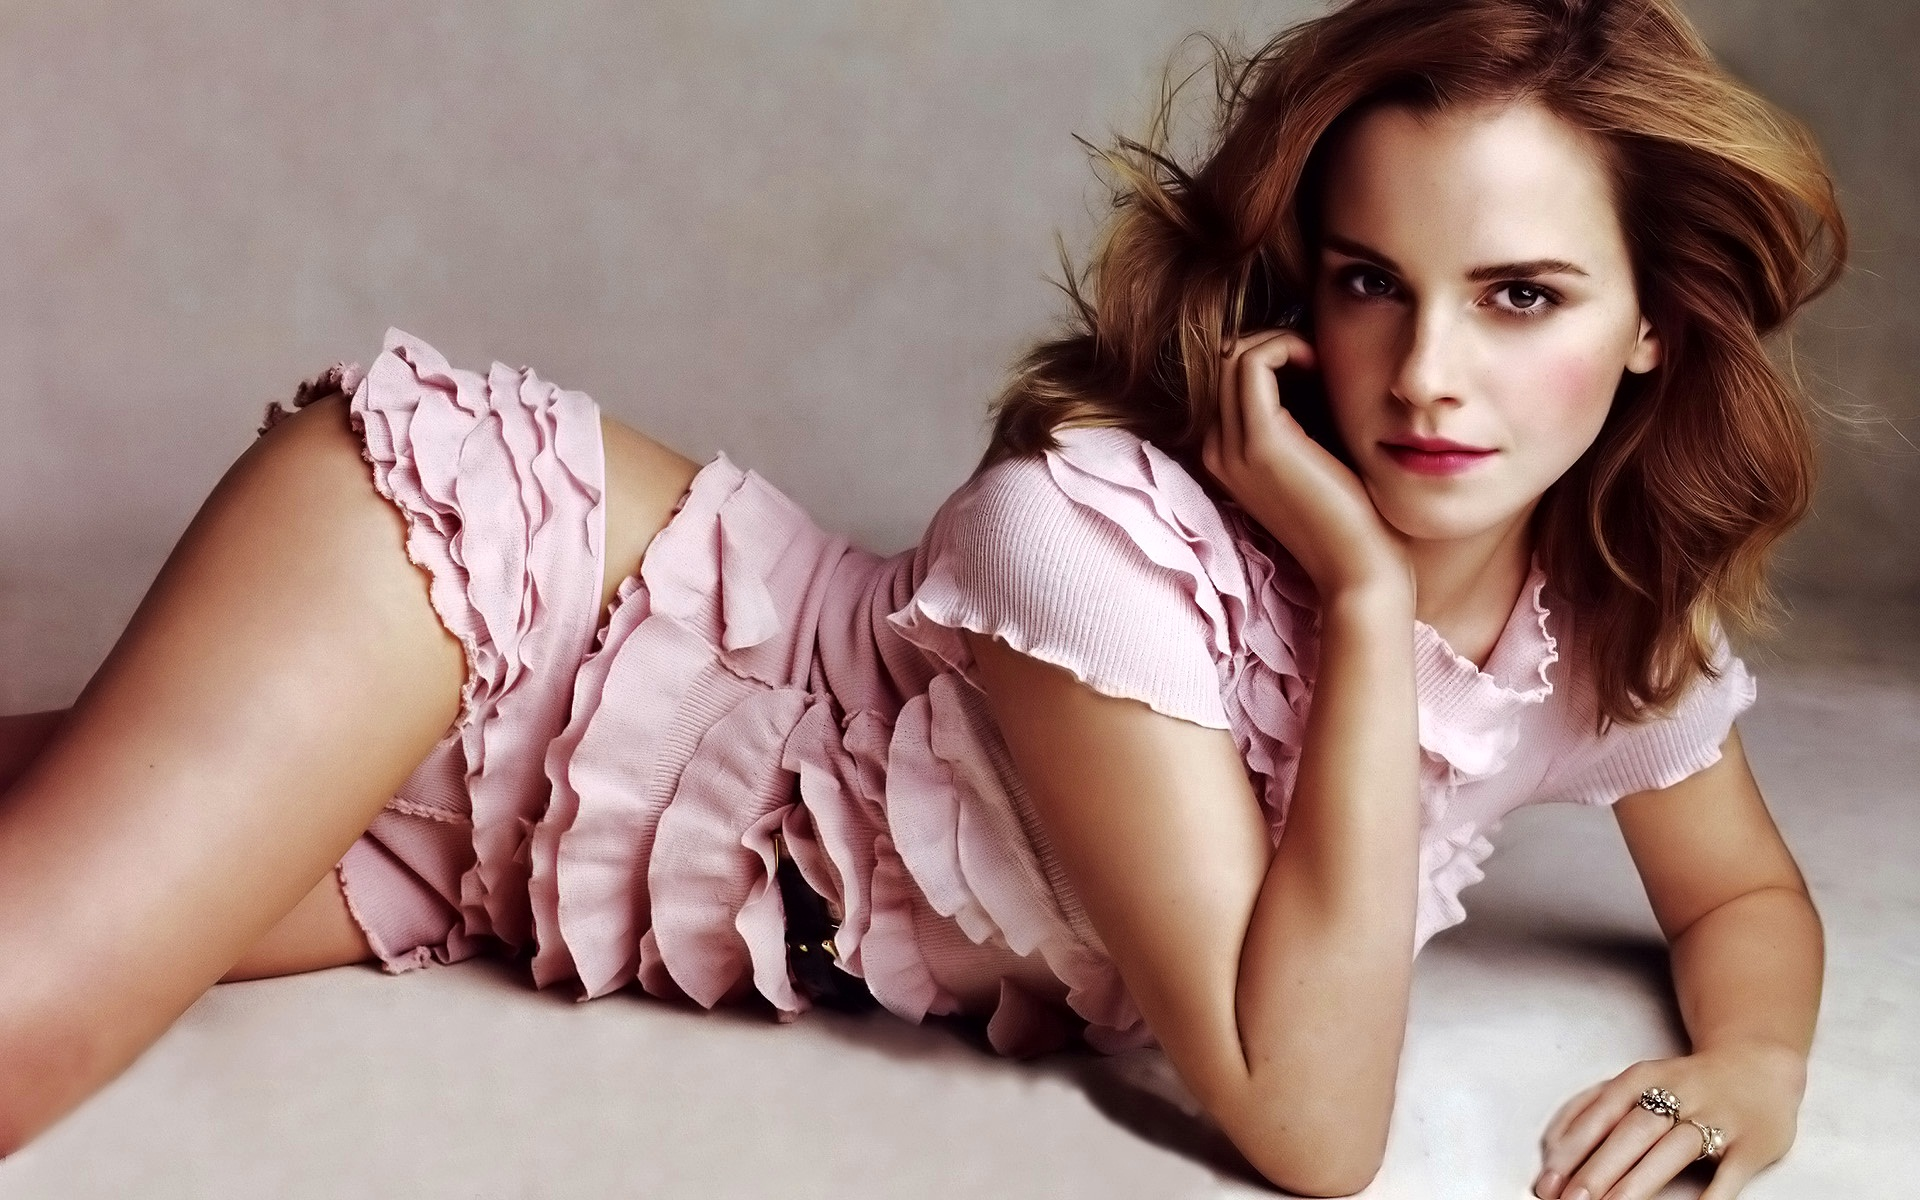 Emma Watson Vanity Fair wallpaper